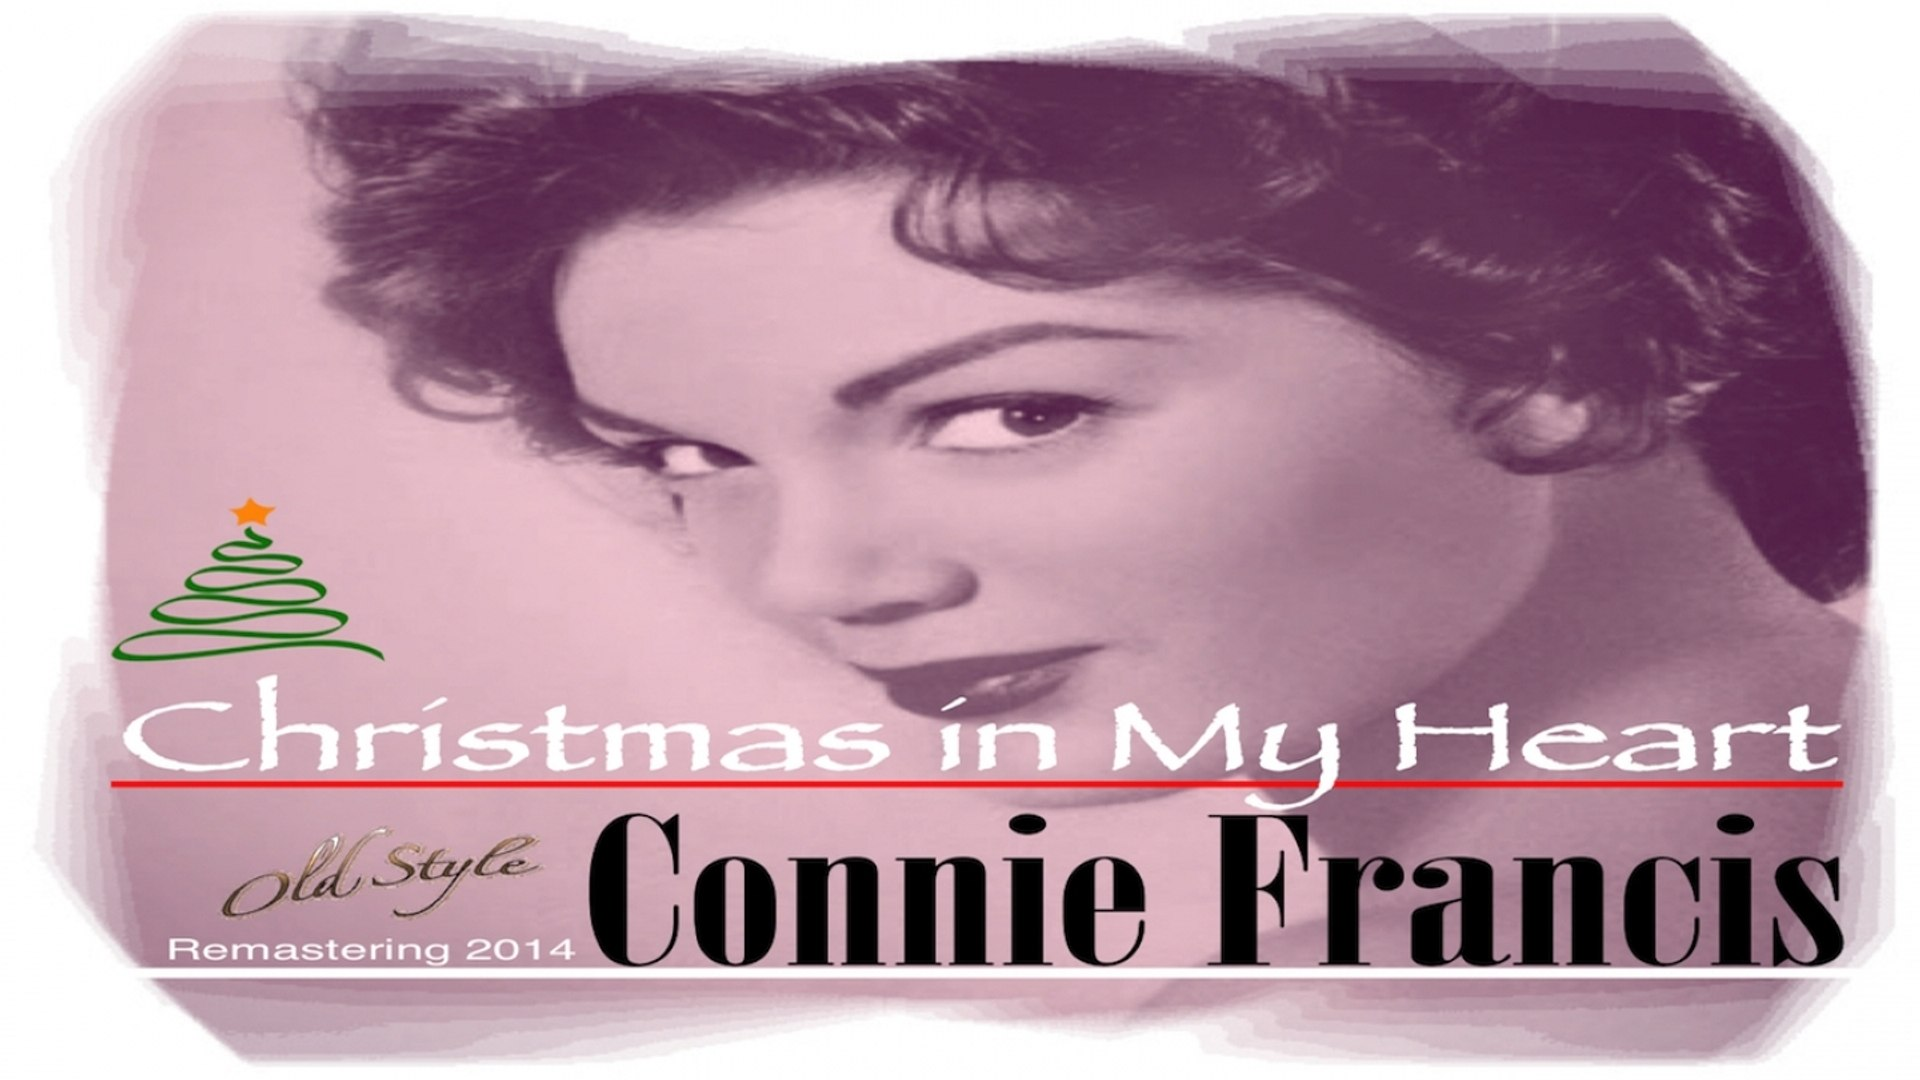 Connie Francis The Twelve Days Of Christmas.Connie Francis Christmas In My Heart Remastered